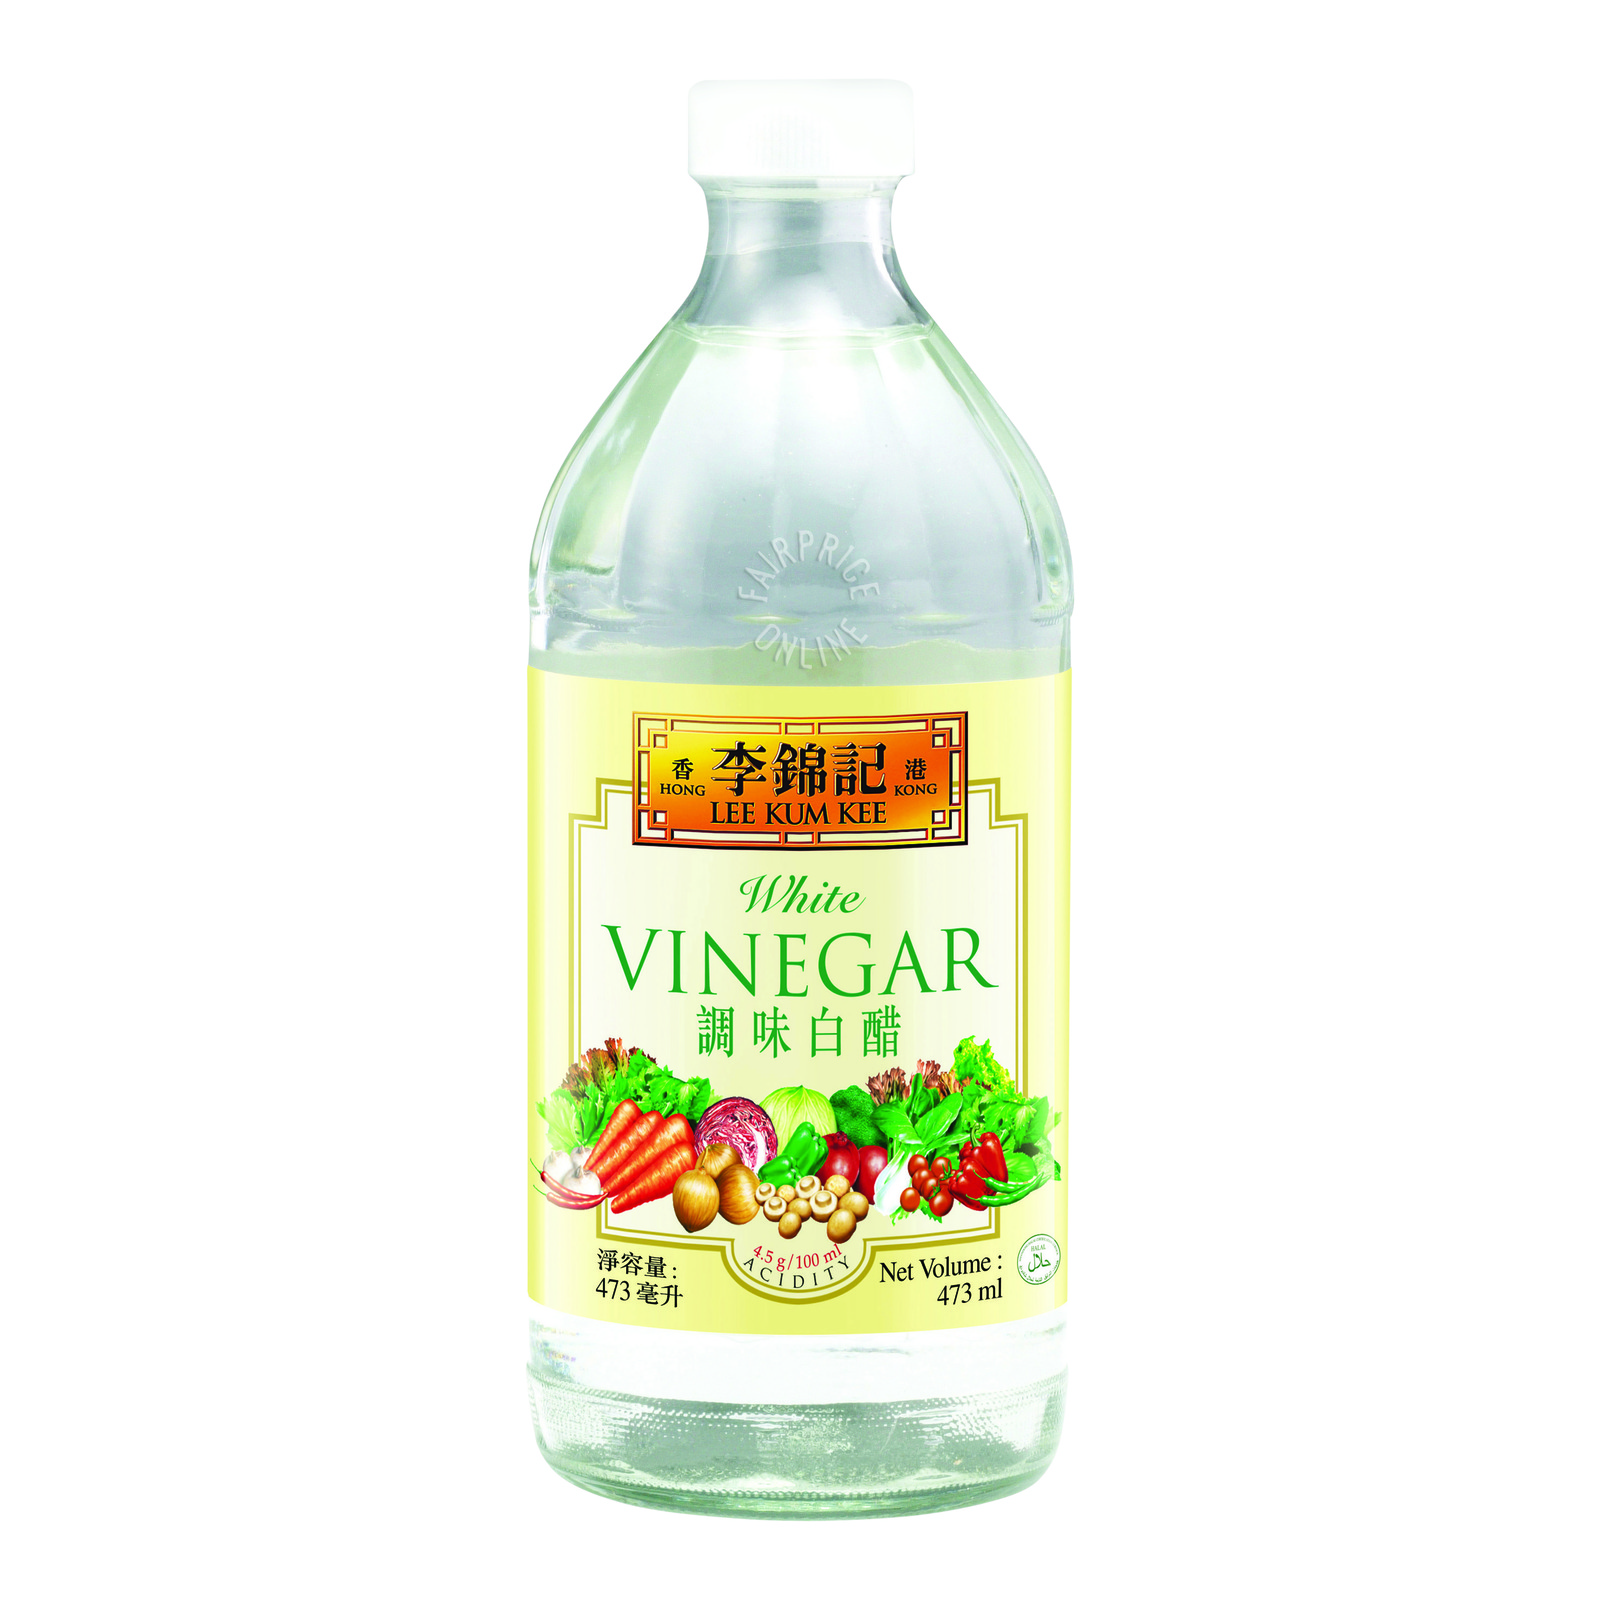 Lee Kum Kee White Vinegar